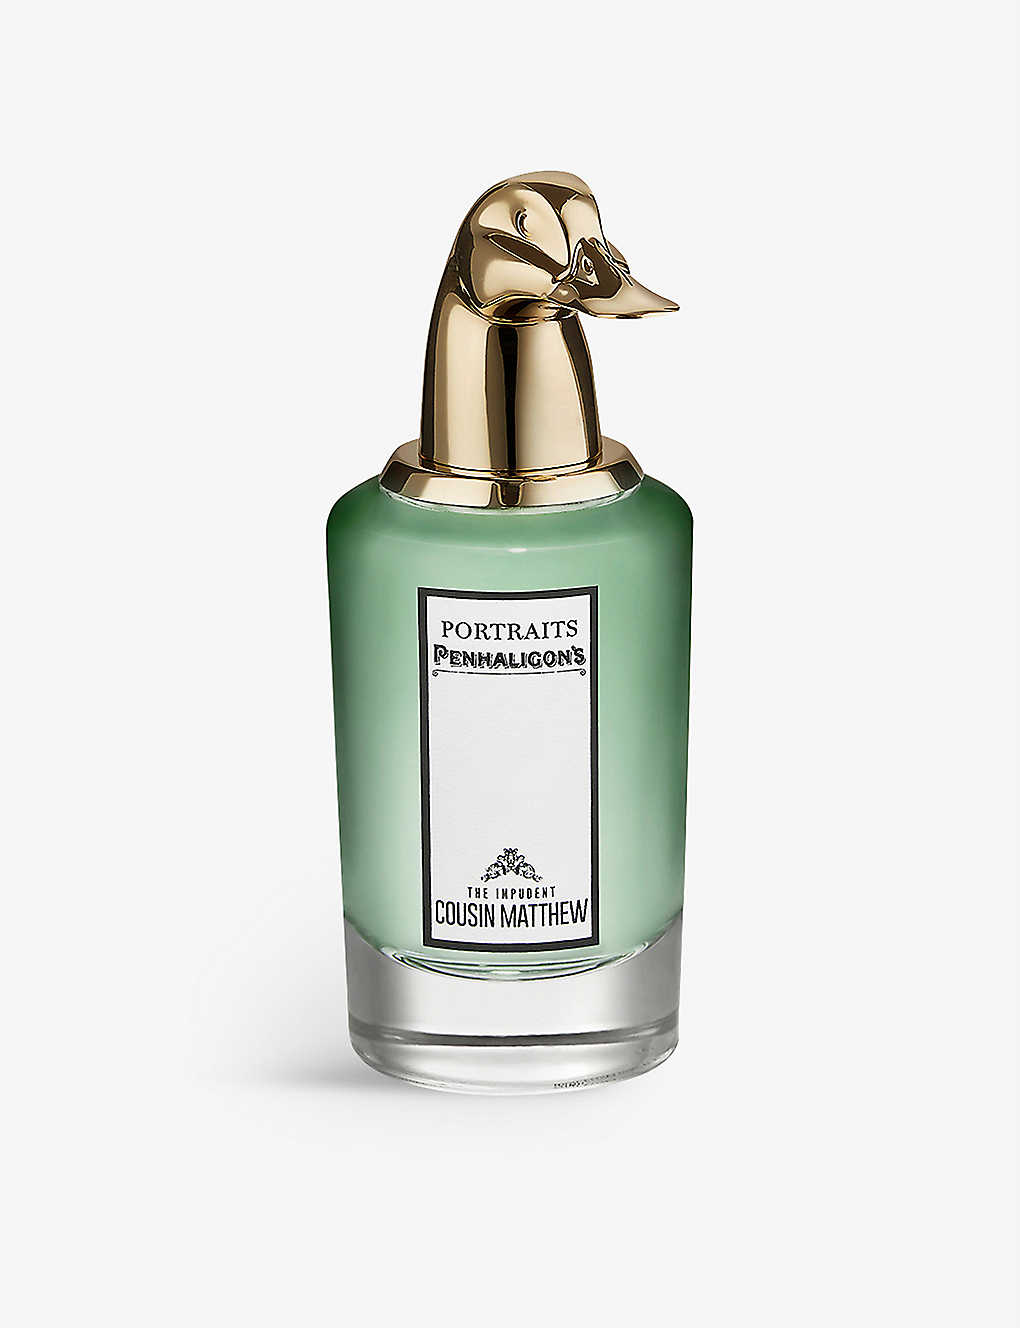 PENHALIGONS:The Impudent Cousin Matthew 浓香水 75ml